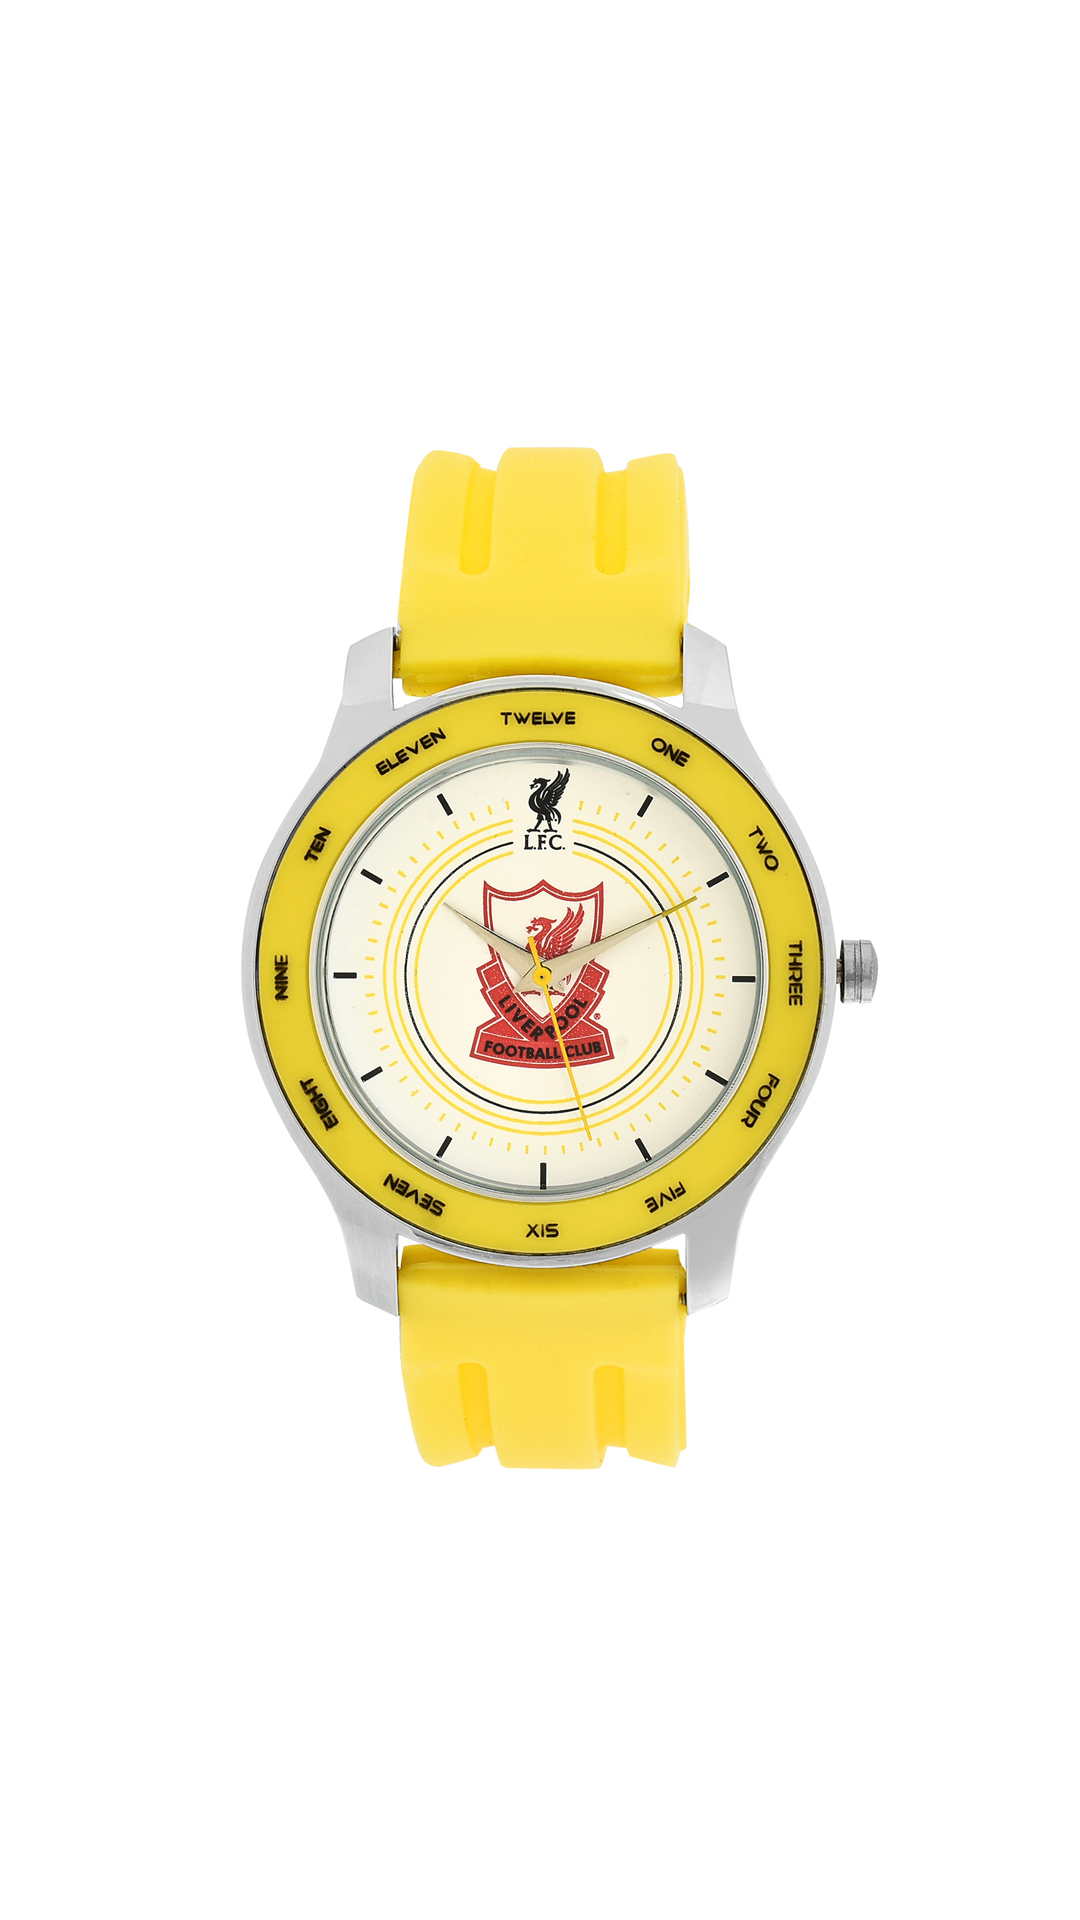 Buy Liverpool Fc Yellowog Watch Official Merchandise Online At